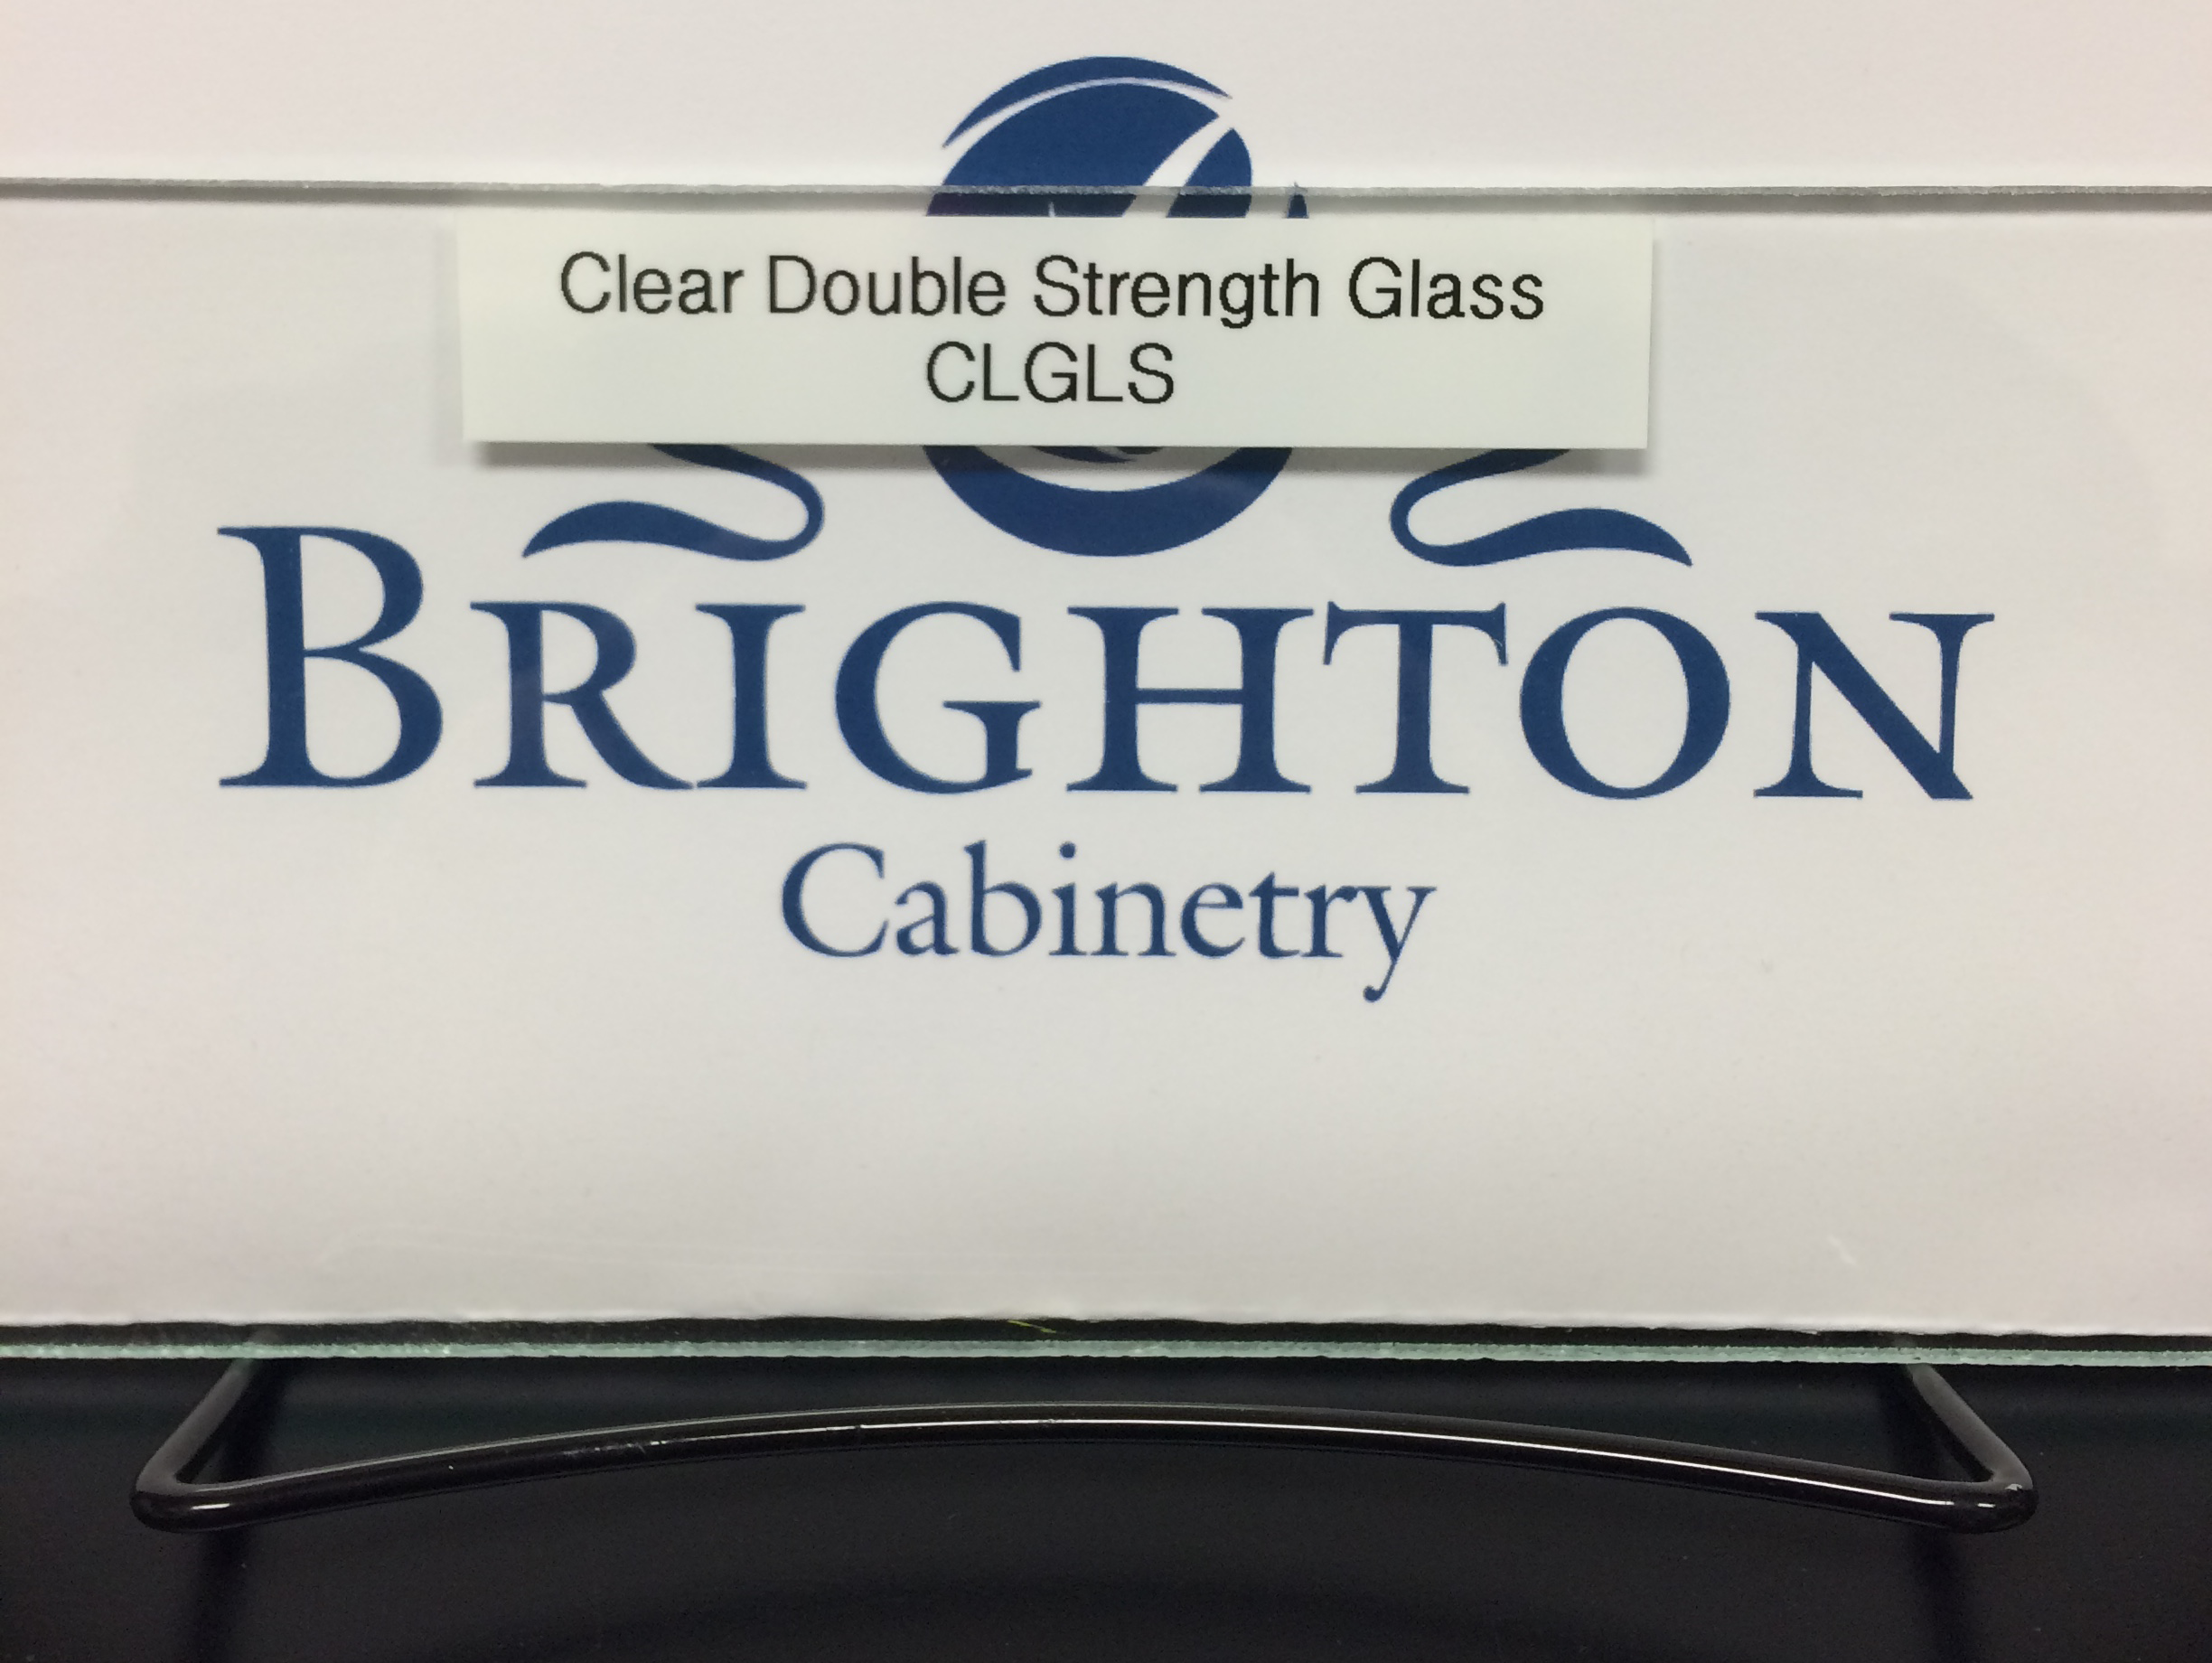 Double Strength Glass Cutting : Glass brighton cabinetry